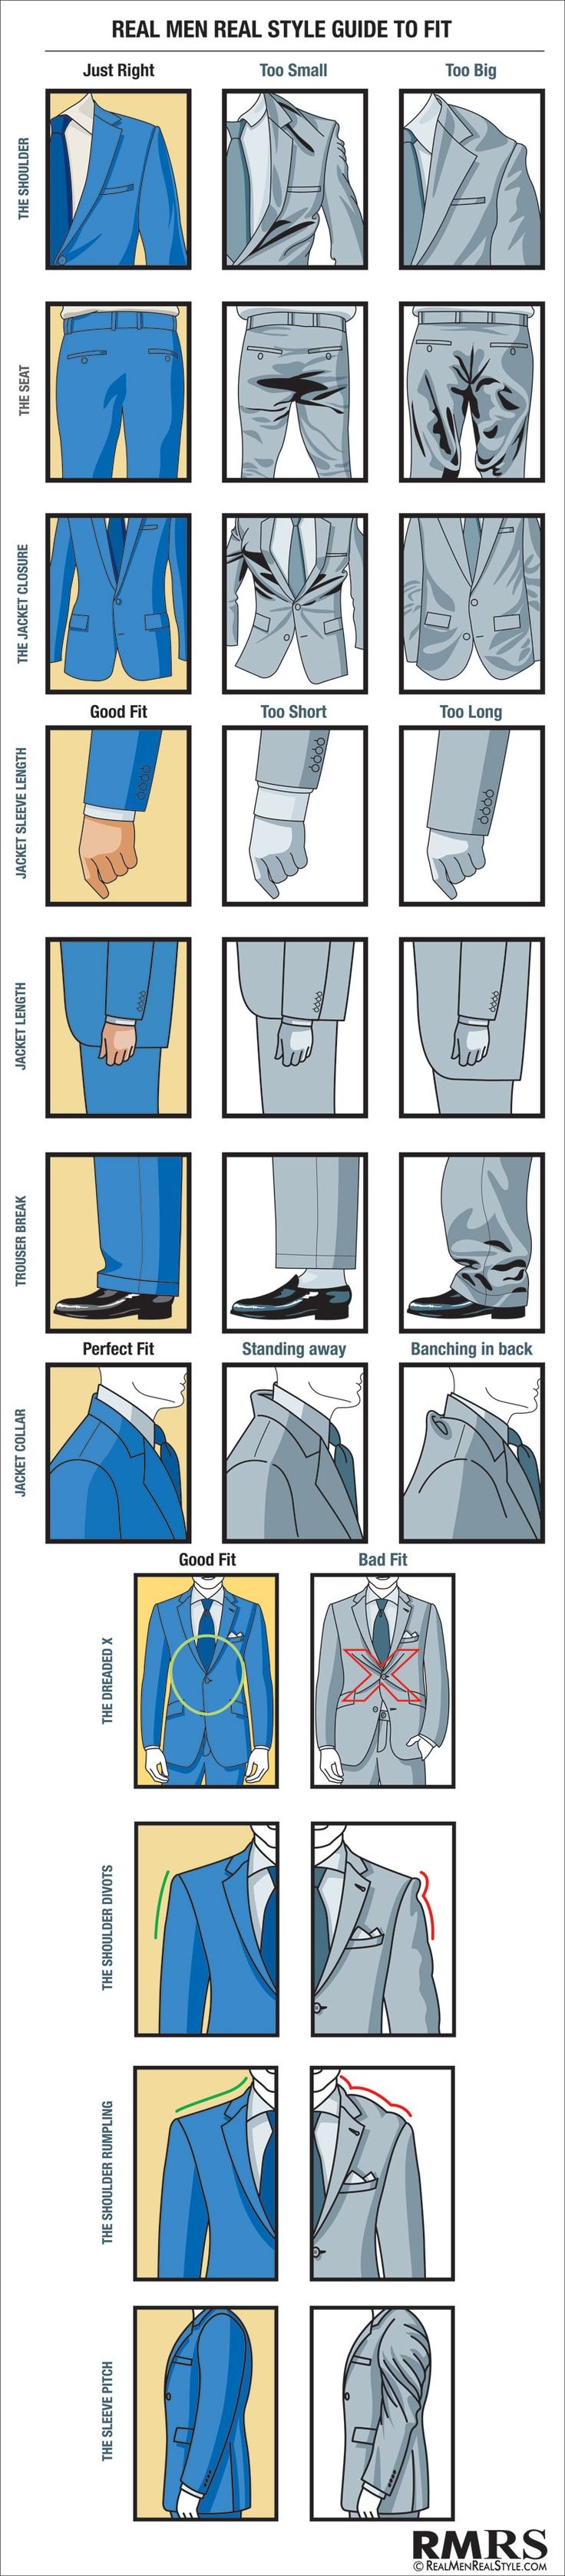 15 Men's Fashion Lifehacks you need in your life - How a Suite Should Fit Guide